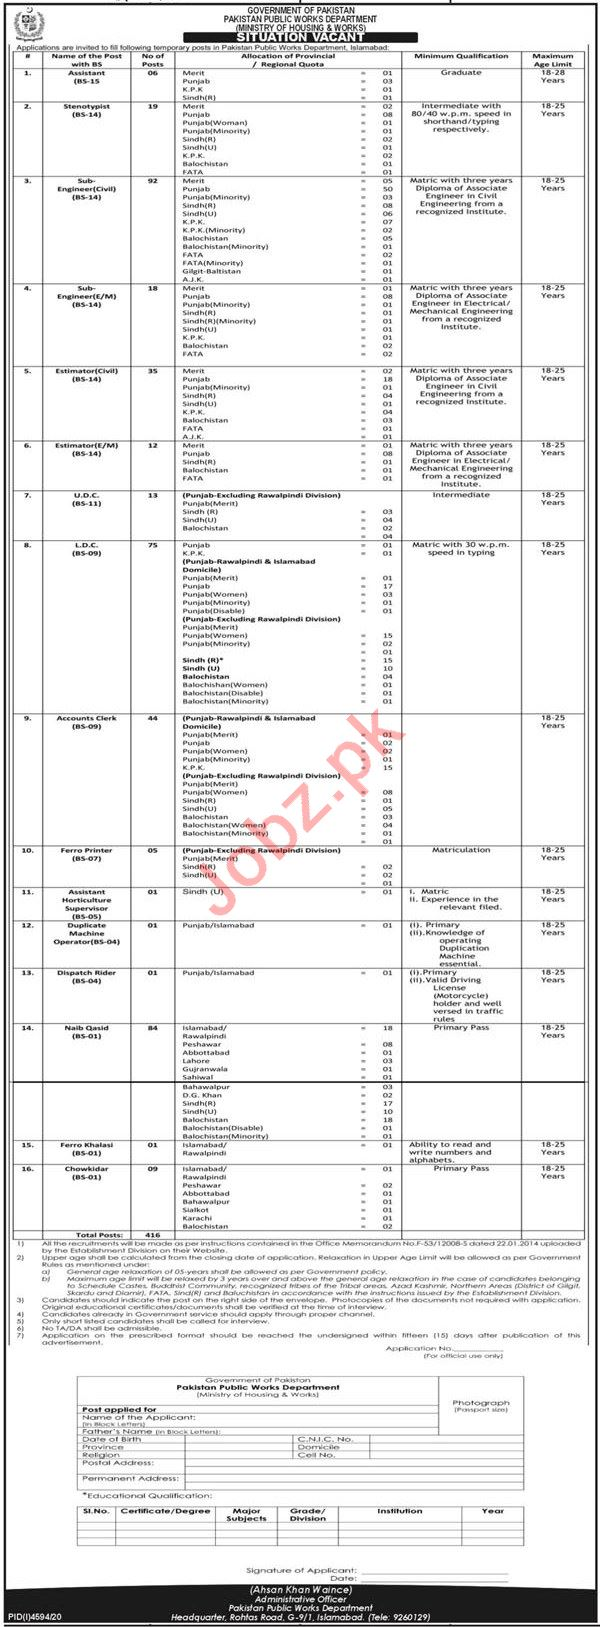 Pakistan Public Works PWD Jobs 2021 for Engineers & Clerks